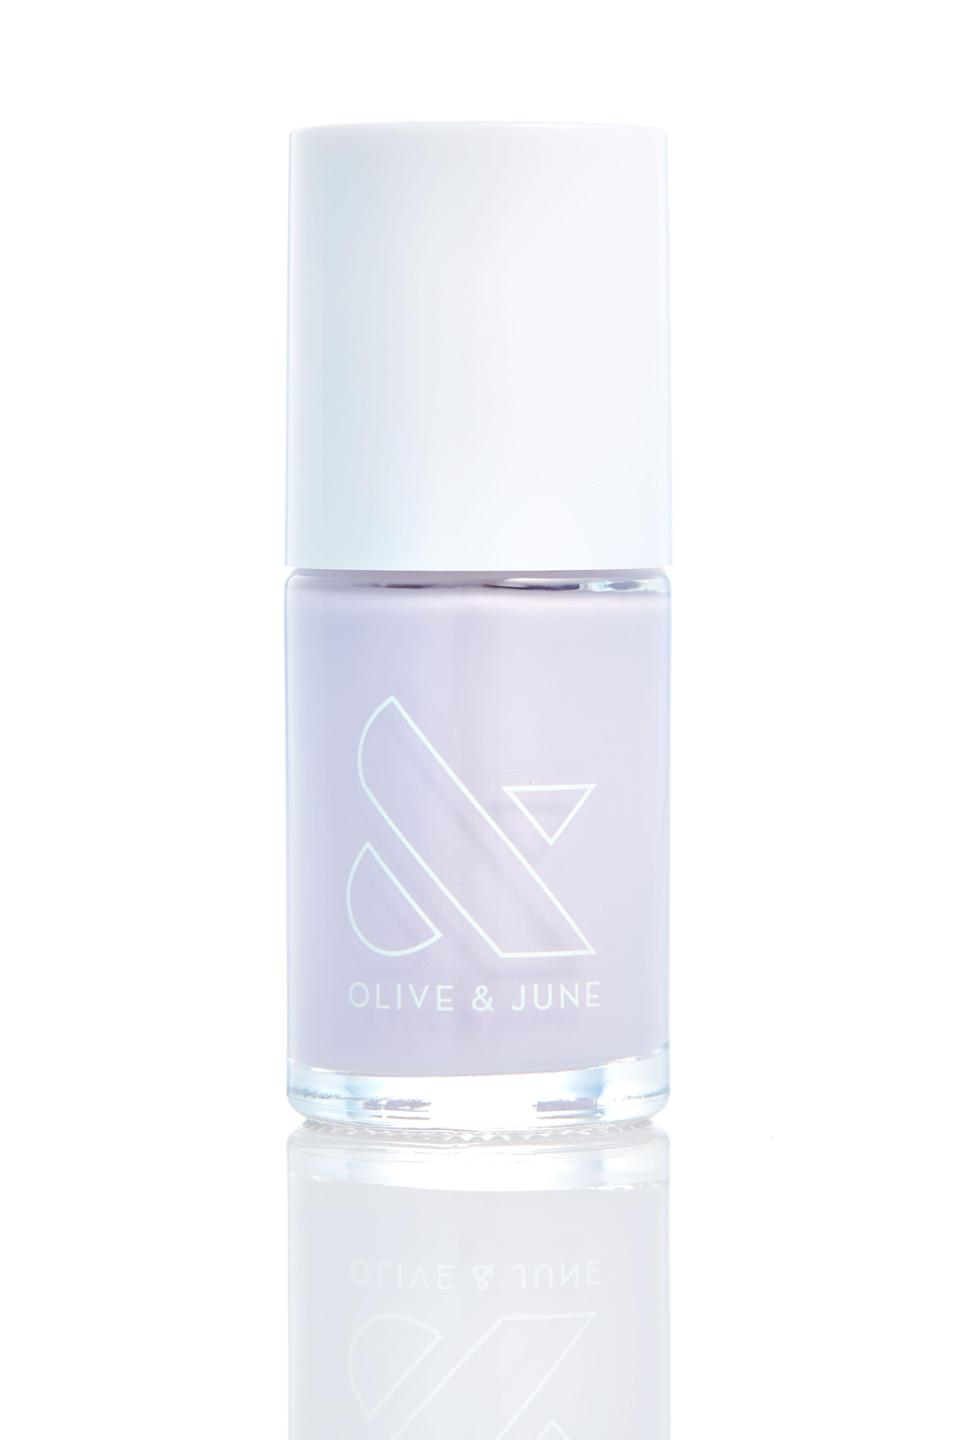 """<p>Round out your <a href=""""https://www.refinery29.com/en-us/pastel-nail-polish-colors"""" rel=""""nofollow noopener"""" target=""""_blank"""" data-ylk=""""slk:pastel collection"""" class=""""link rapid-noclick-resp"""">pastel collection</a> with this lilac polish that will fit perfectly into your <a href=""""https://www.refinery29.com/en-us/2018/08/206334/mismatched-nail-trend"""" rel=""""nofollow noopener"""" target=""""_blank"""" data-ylk=""""slk:mismatched manicure"""" class=""""link rapid-noclick-resp"""">mismatched manicure</a> rotation.</p><br><br><strong>Olive & June</strong> Nail Polish in Tara, $8, available at <a href=""""https://olivejune.com/collections/nail-polish/products/tara"""" rel=""""nofollow noopener"""" target=""""_blank"""" data-ylk=""""slk:Olive & June"""" class=""""link rapid-noclick-resp"""">Olive & June</a>"""